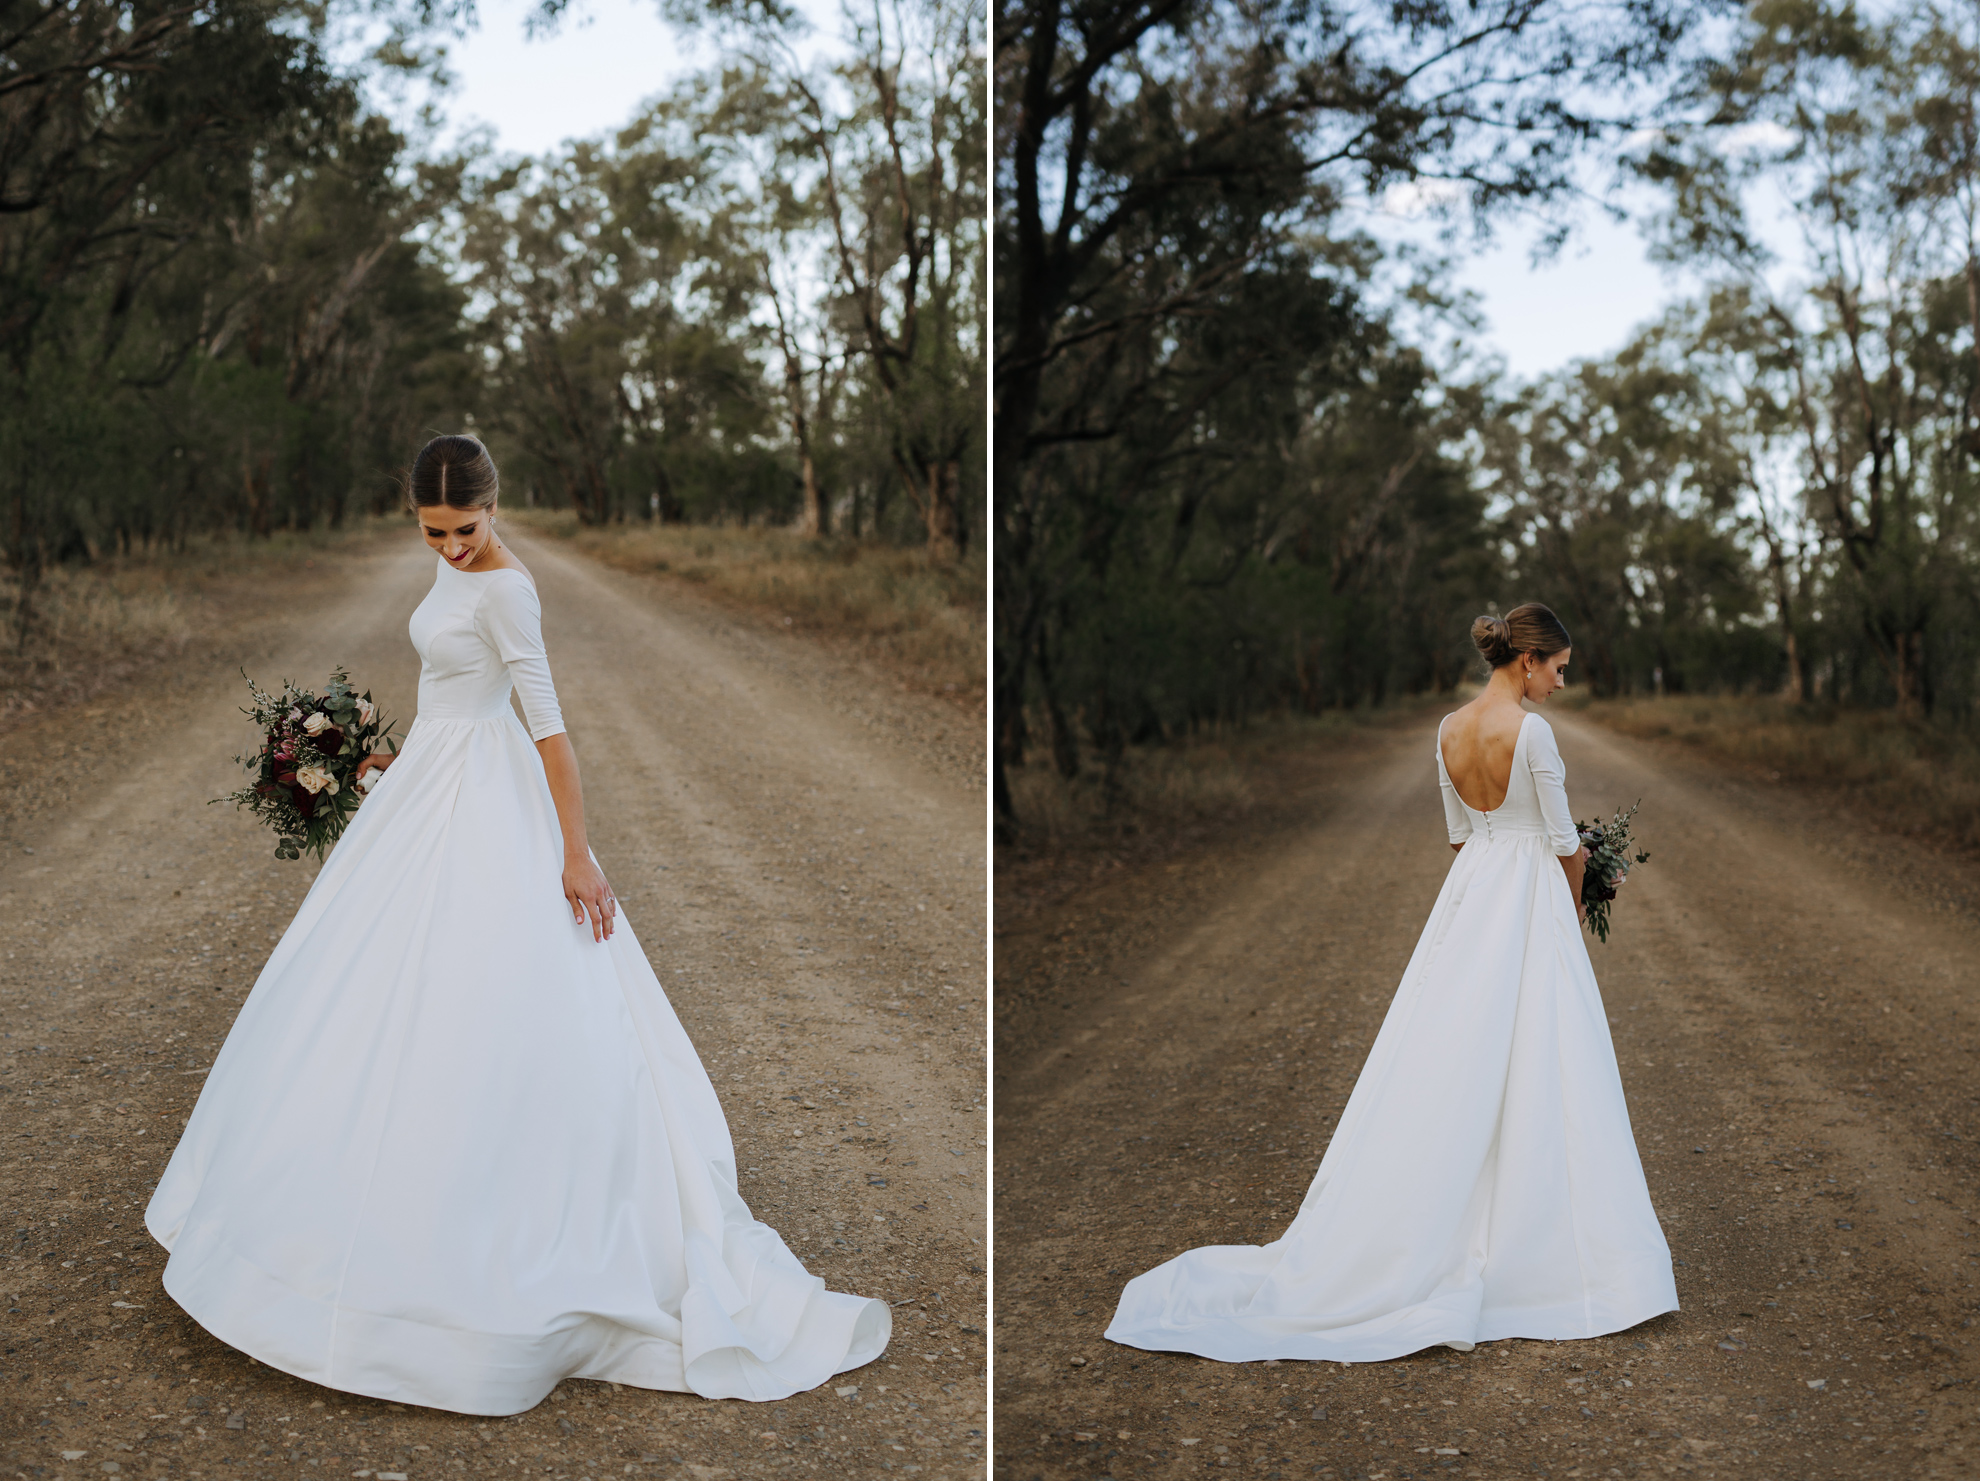 049-Chloe_Joe_Rockhampton_Wedding.jpg